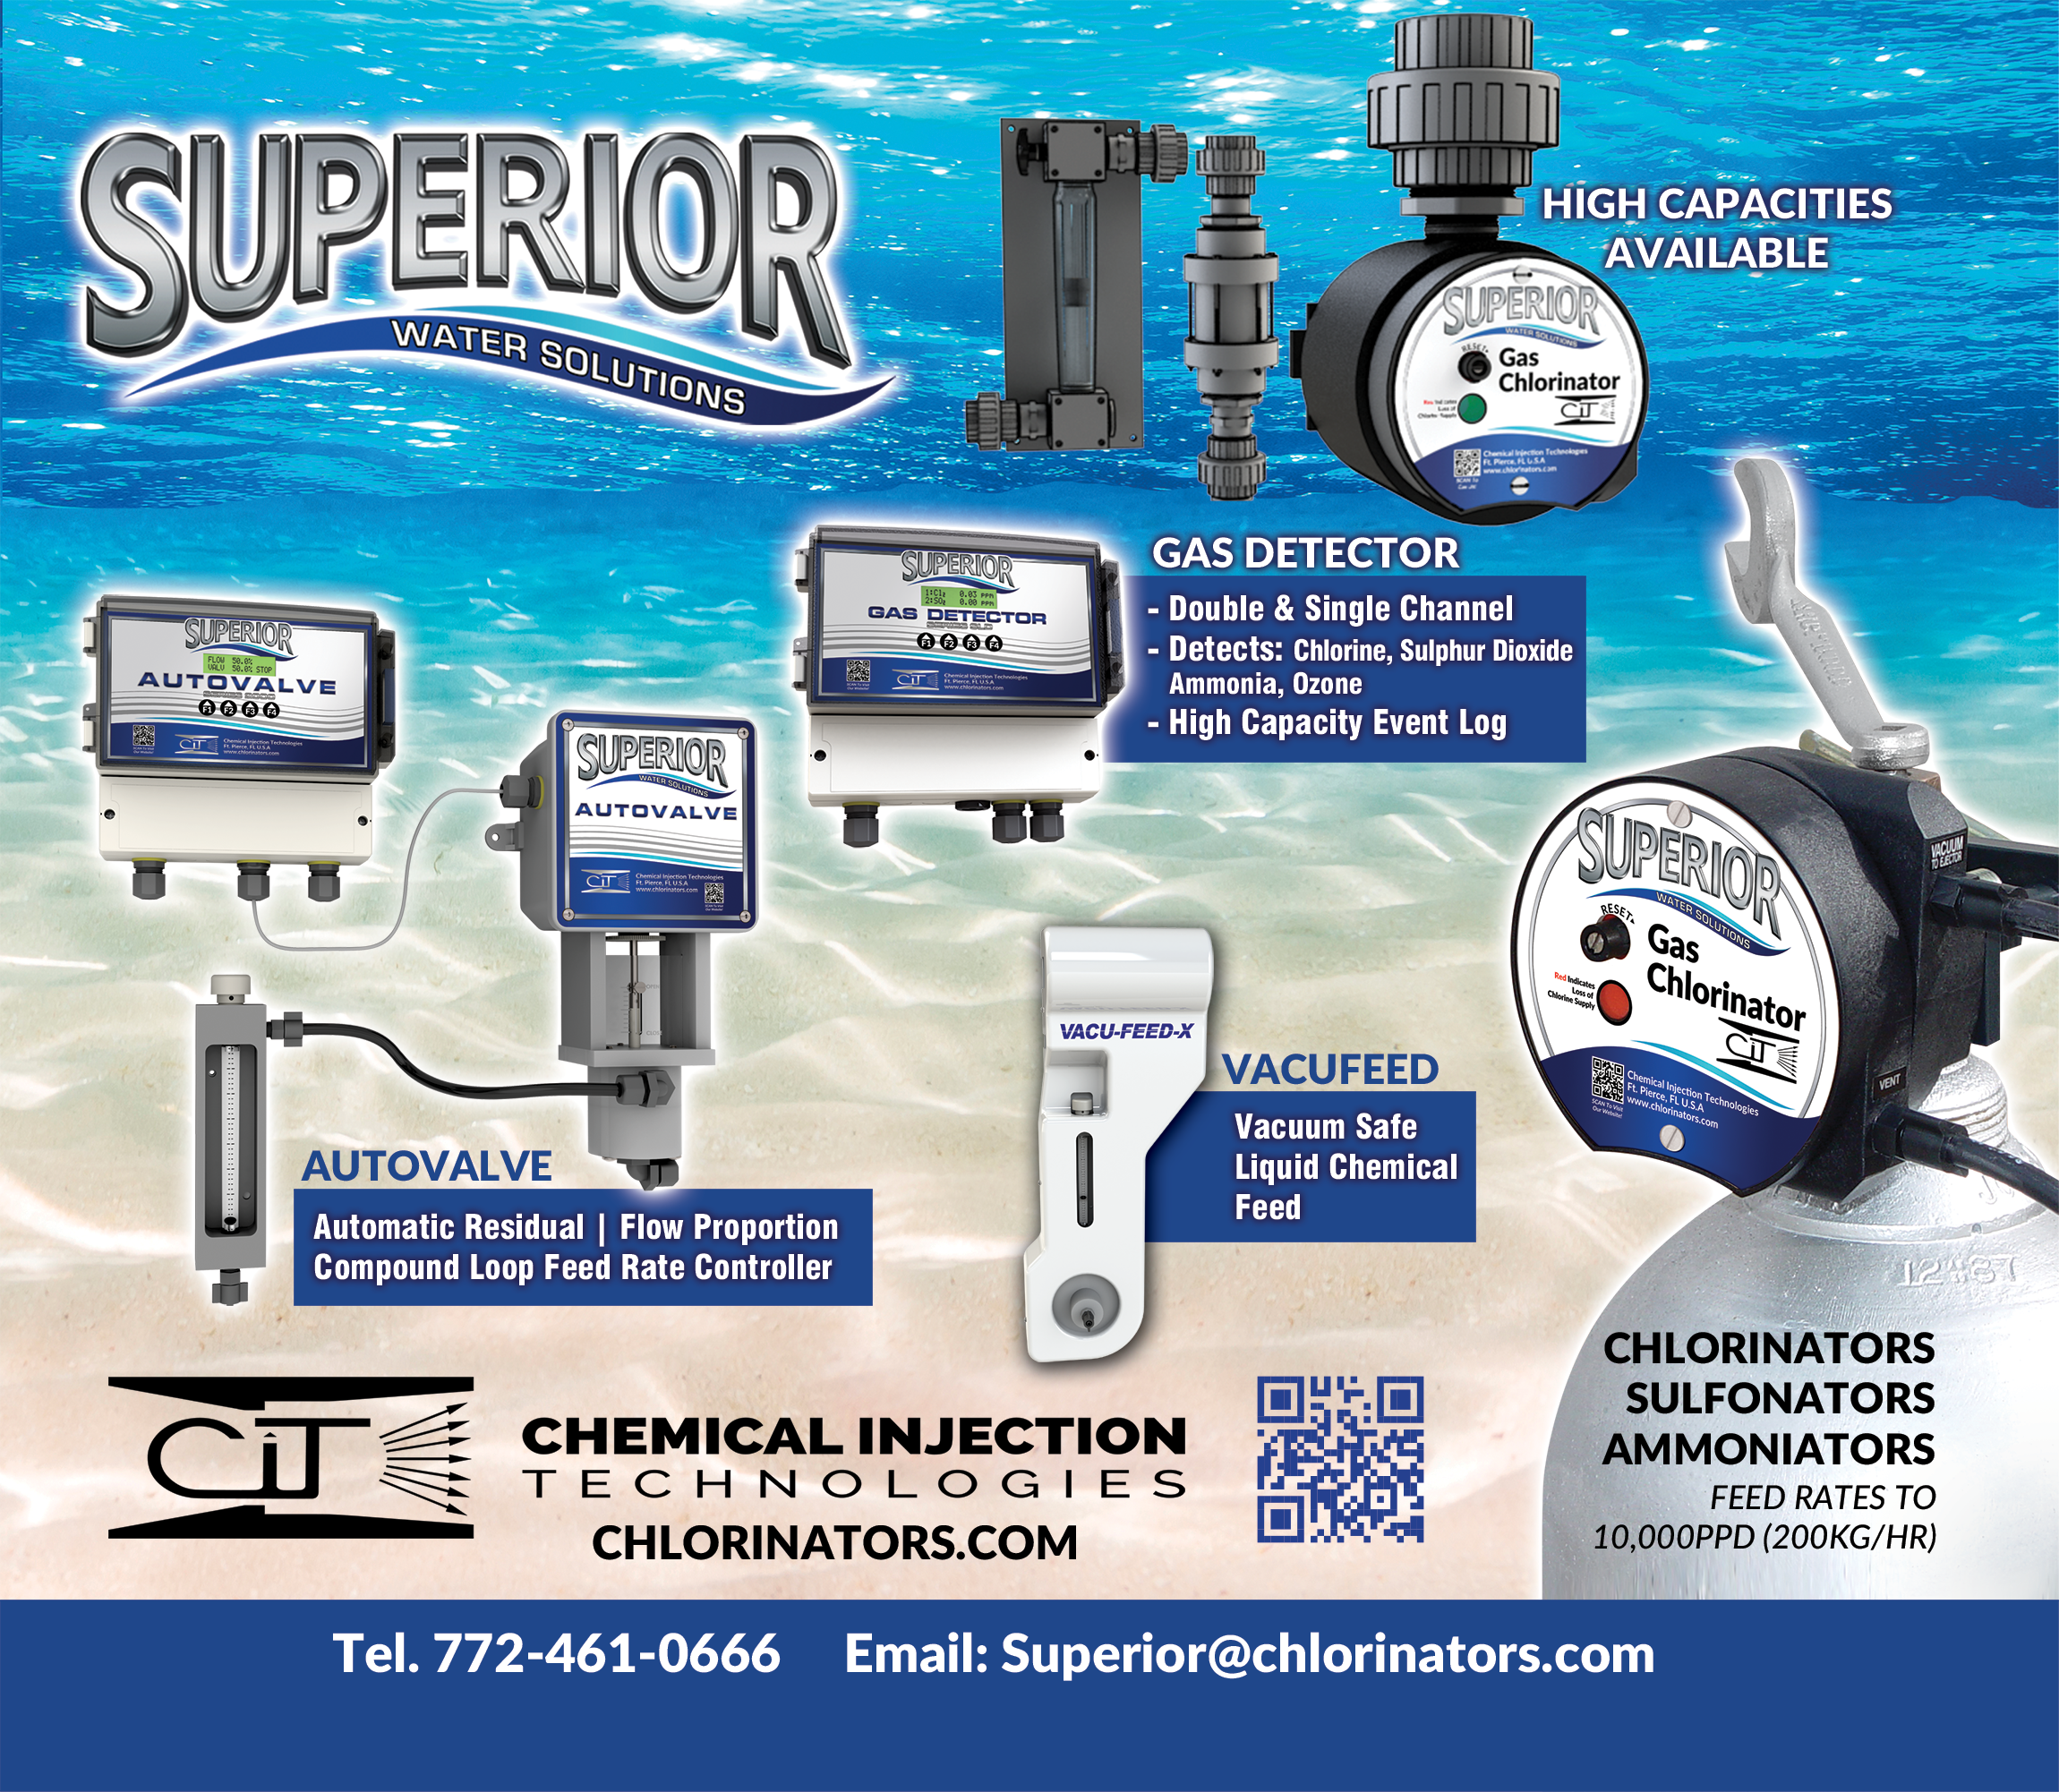 Superior gas chlorinator, chlorination, chlorine, sanitize, disinfect, irrigation, water treatment, control valve, analyzer, flow proportioning, wastewater plant, chemical feed pump, chicken process